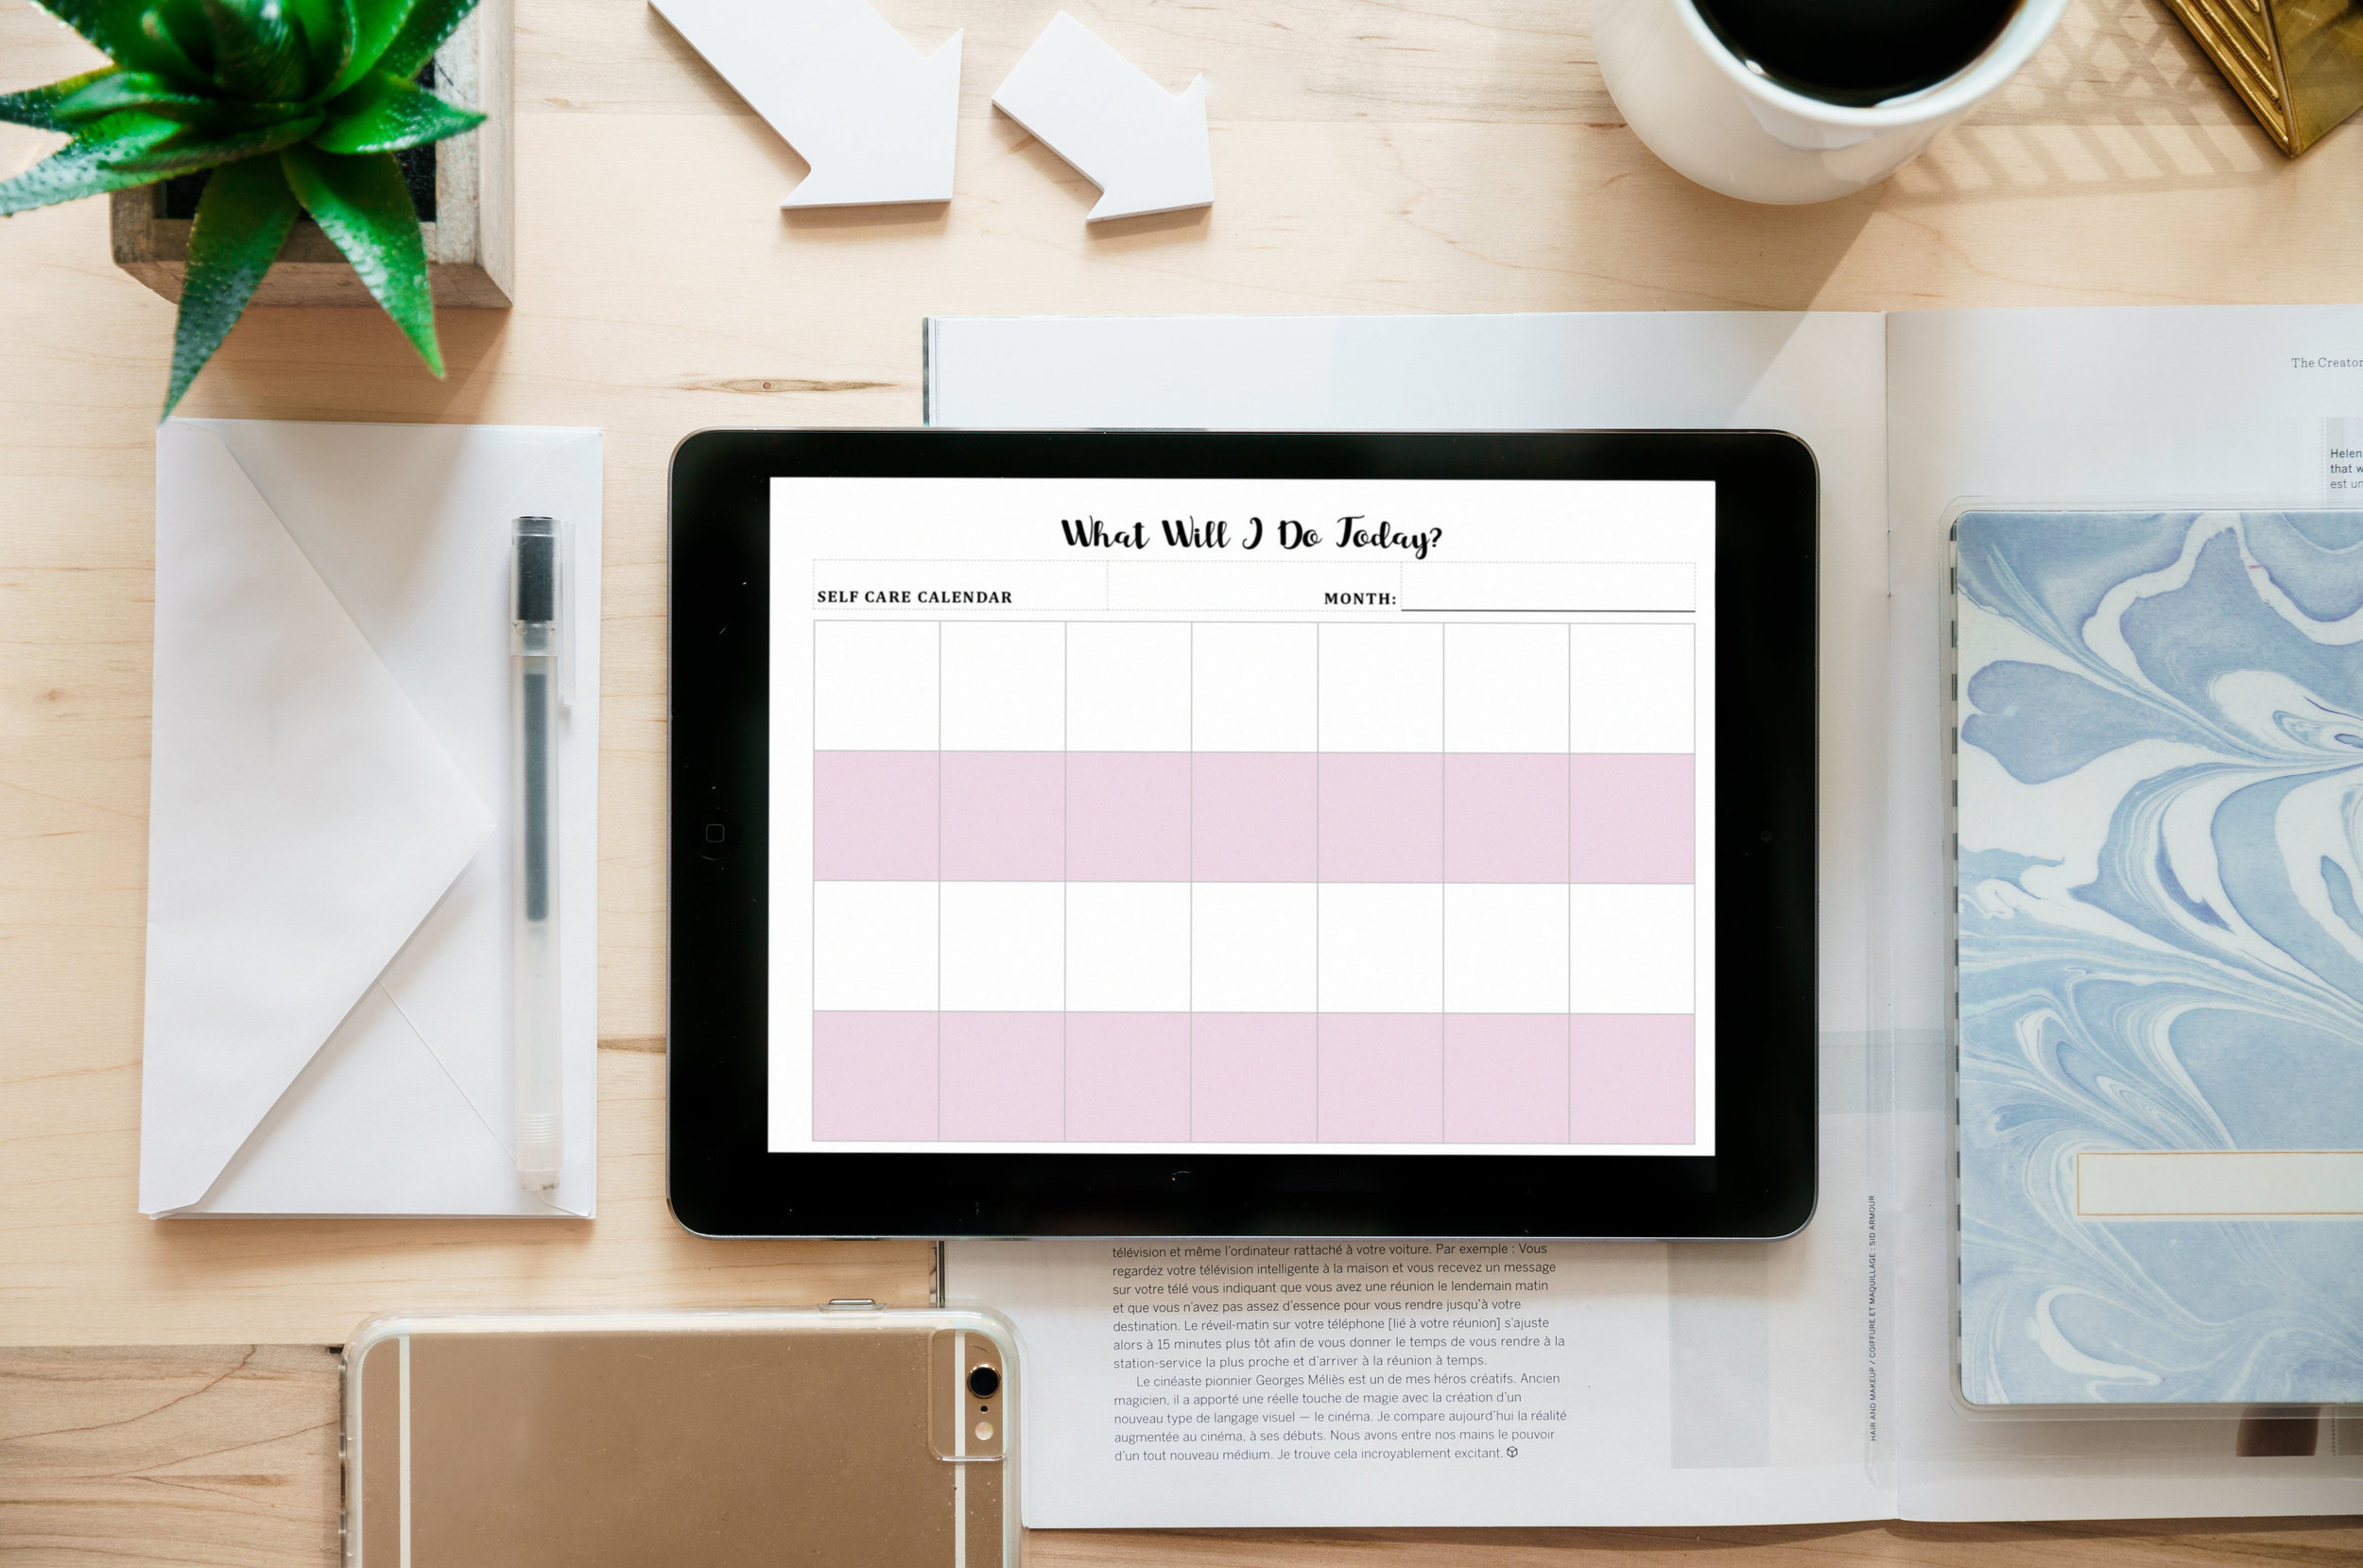 SELF CARE CALENDAR IPAD.jpg